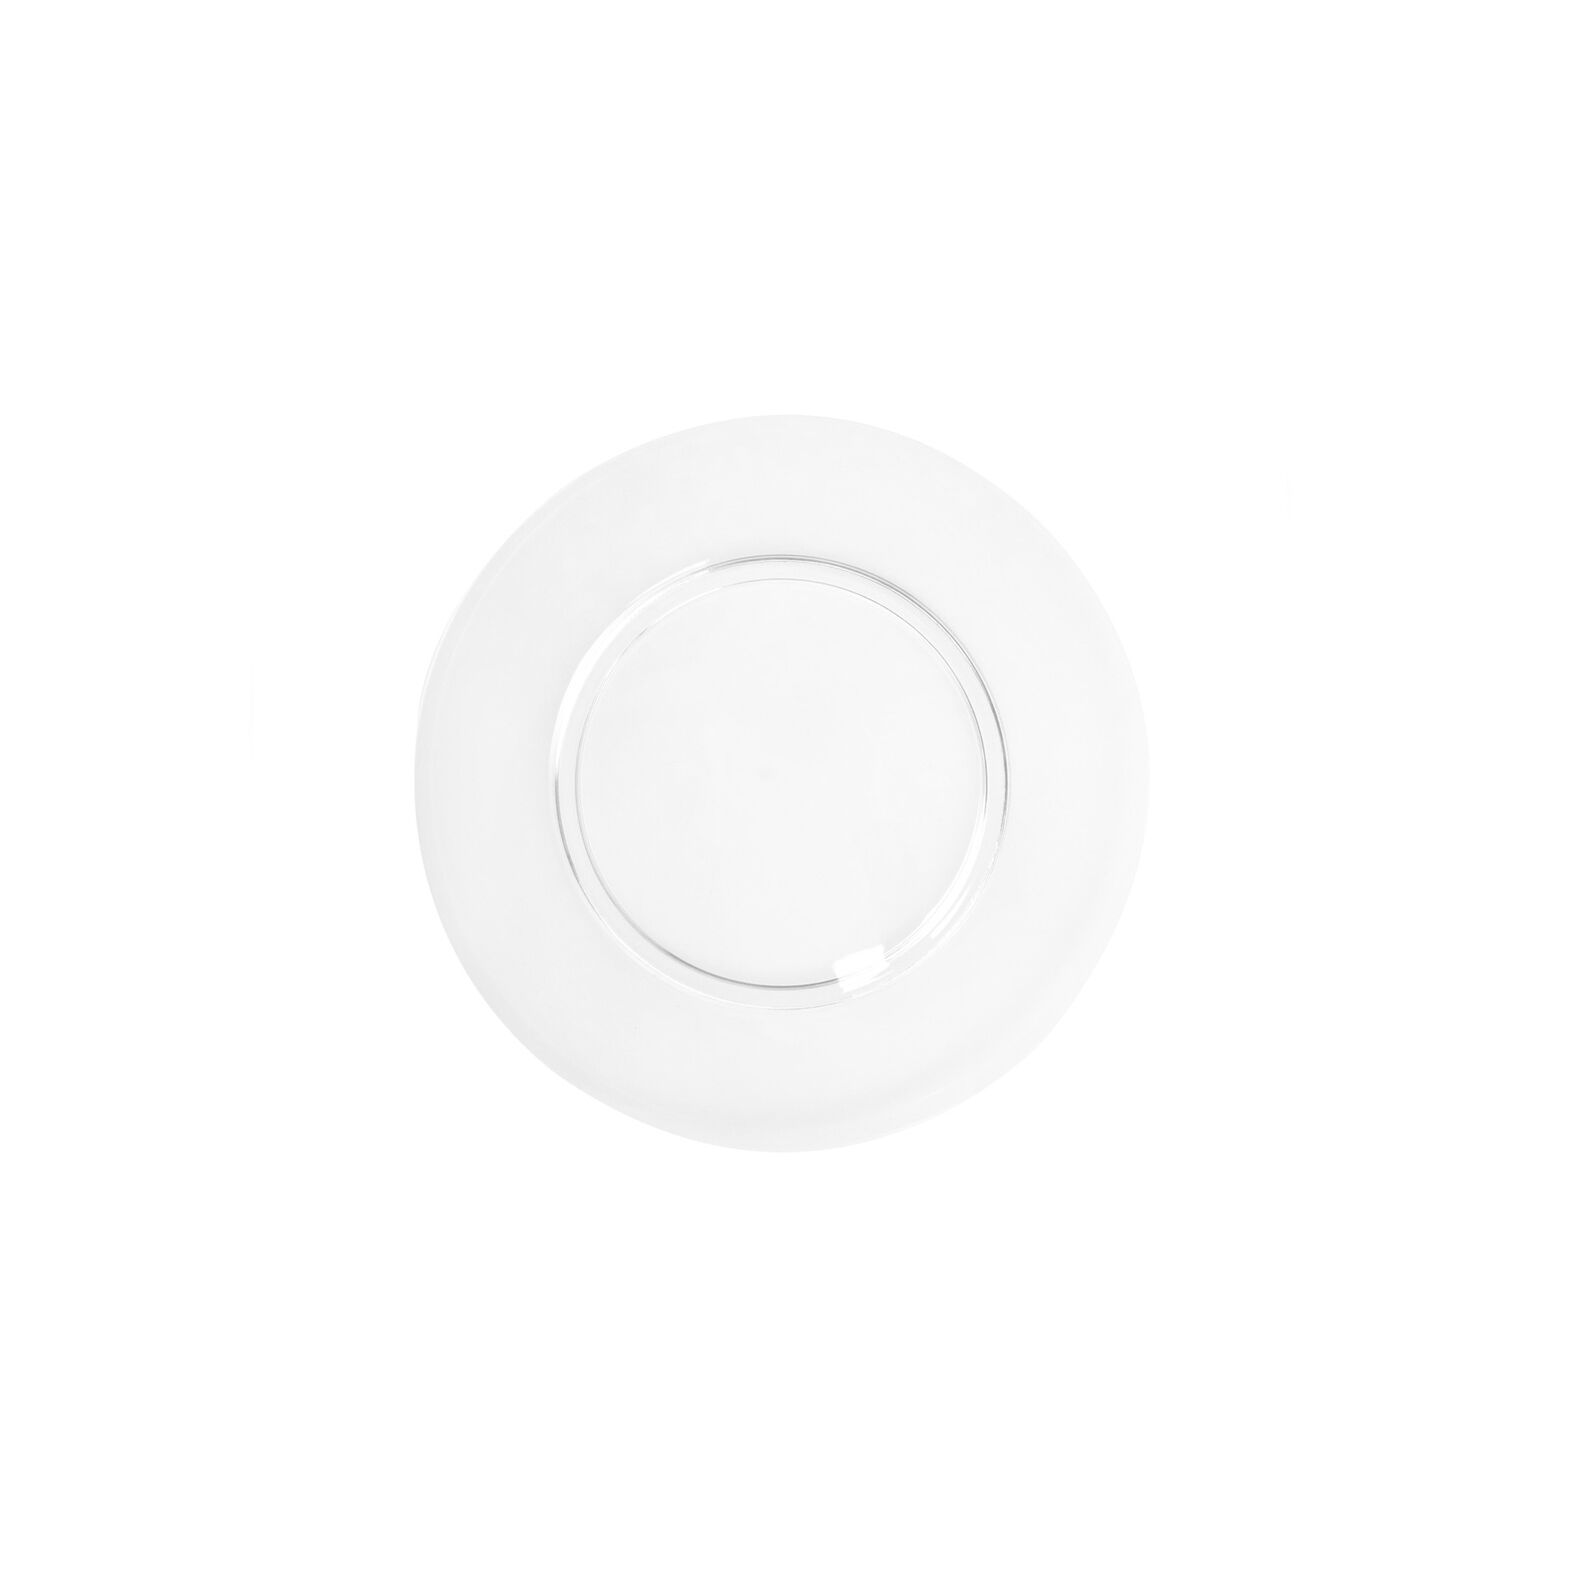 MS plastic side plate